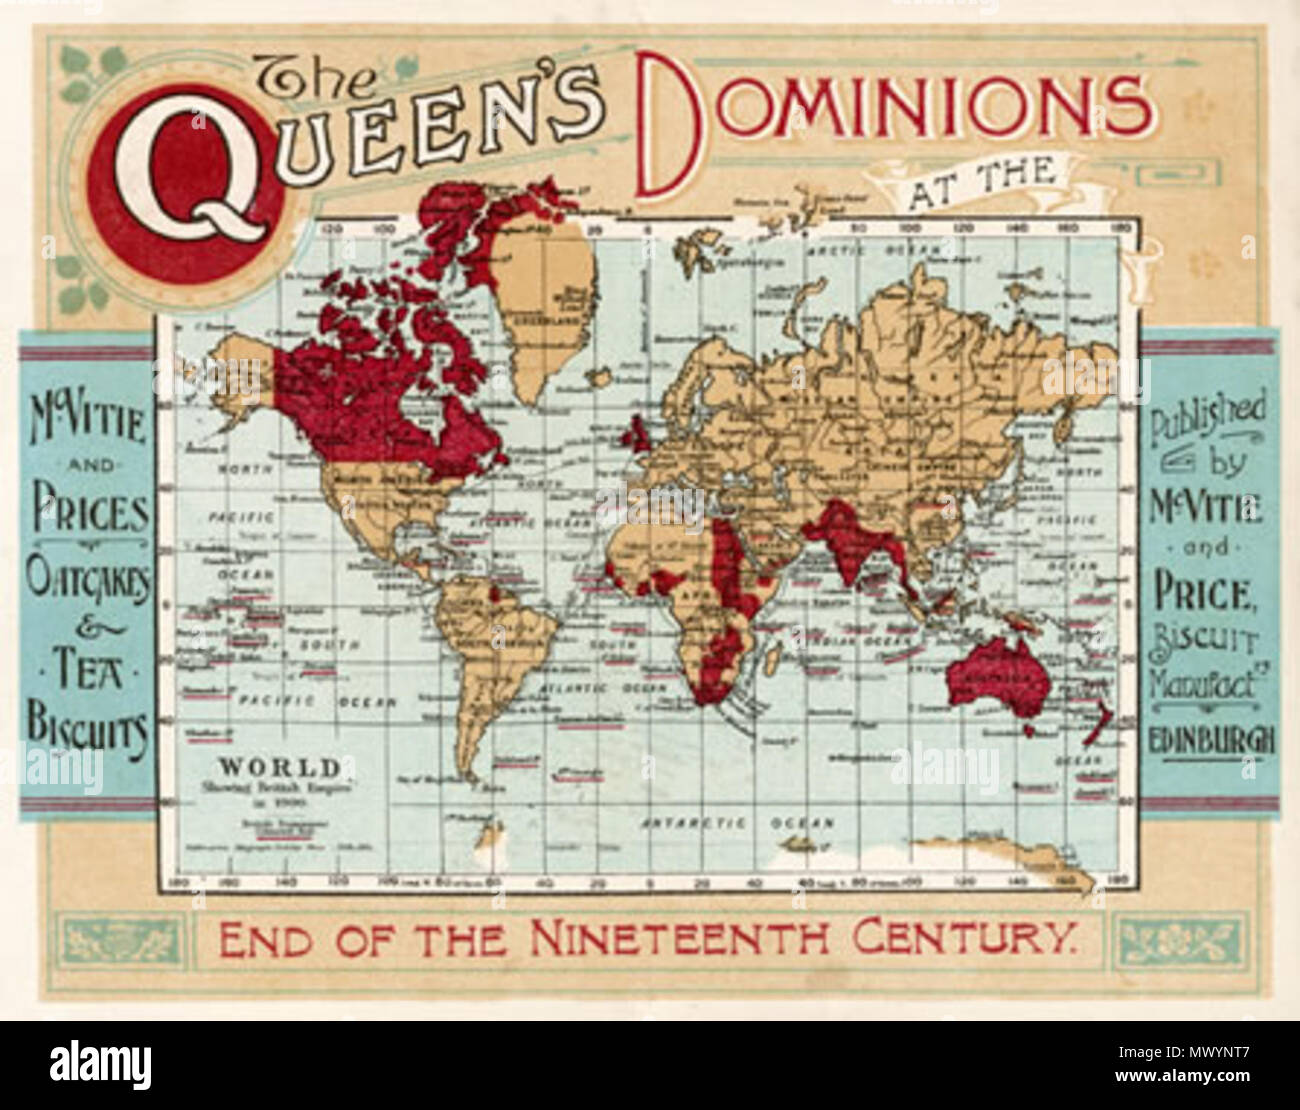 . World map of the Queen's Dominions at the end of the nineteenth century . 1898. McVitie and Price 603 The-queens-dominions - Stock Image